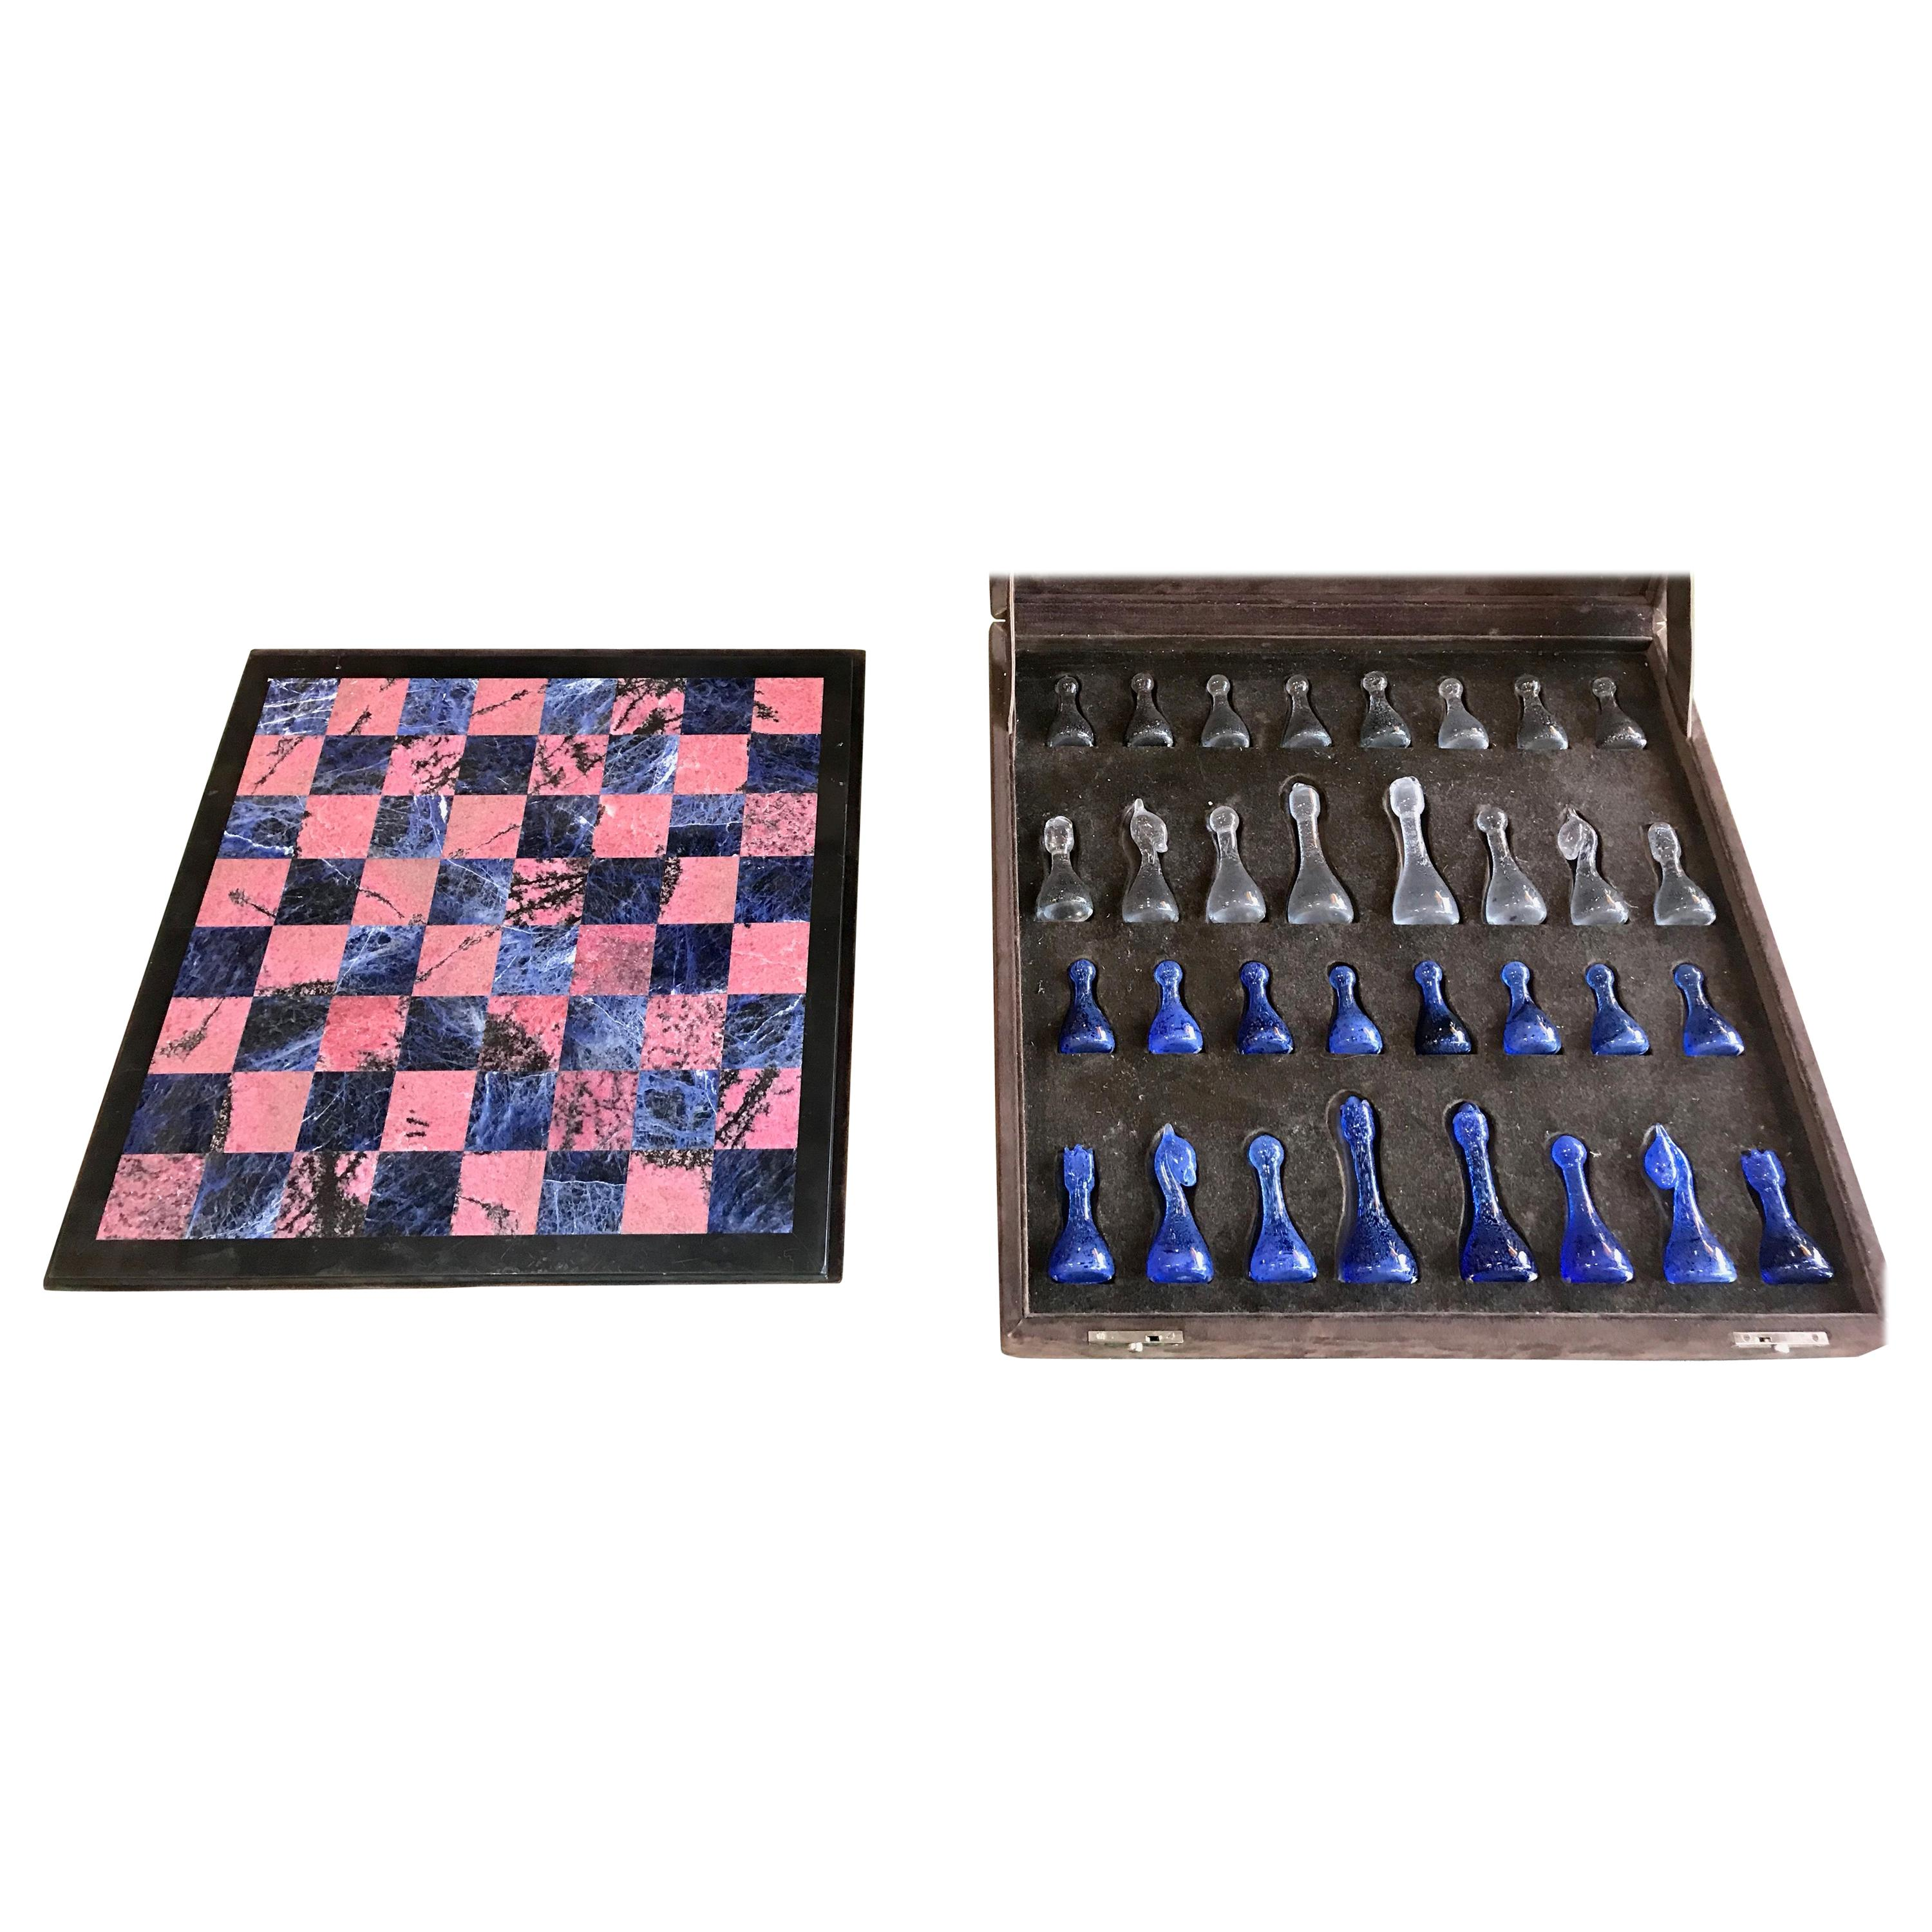 Blu Marble and Art Glass Chess Game Set, Italy, circa 1960s